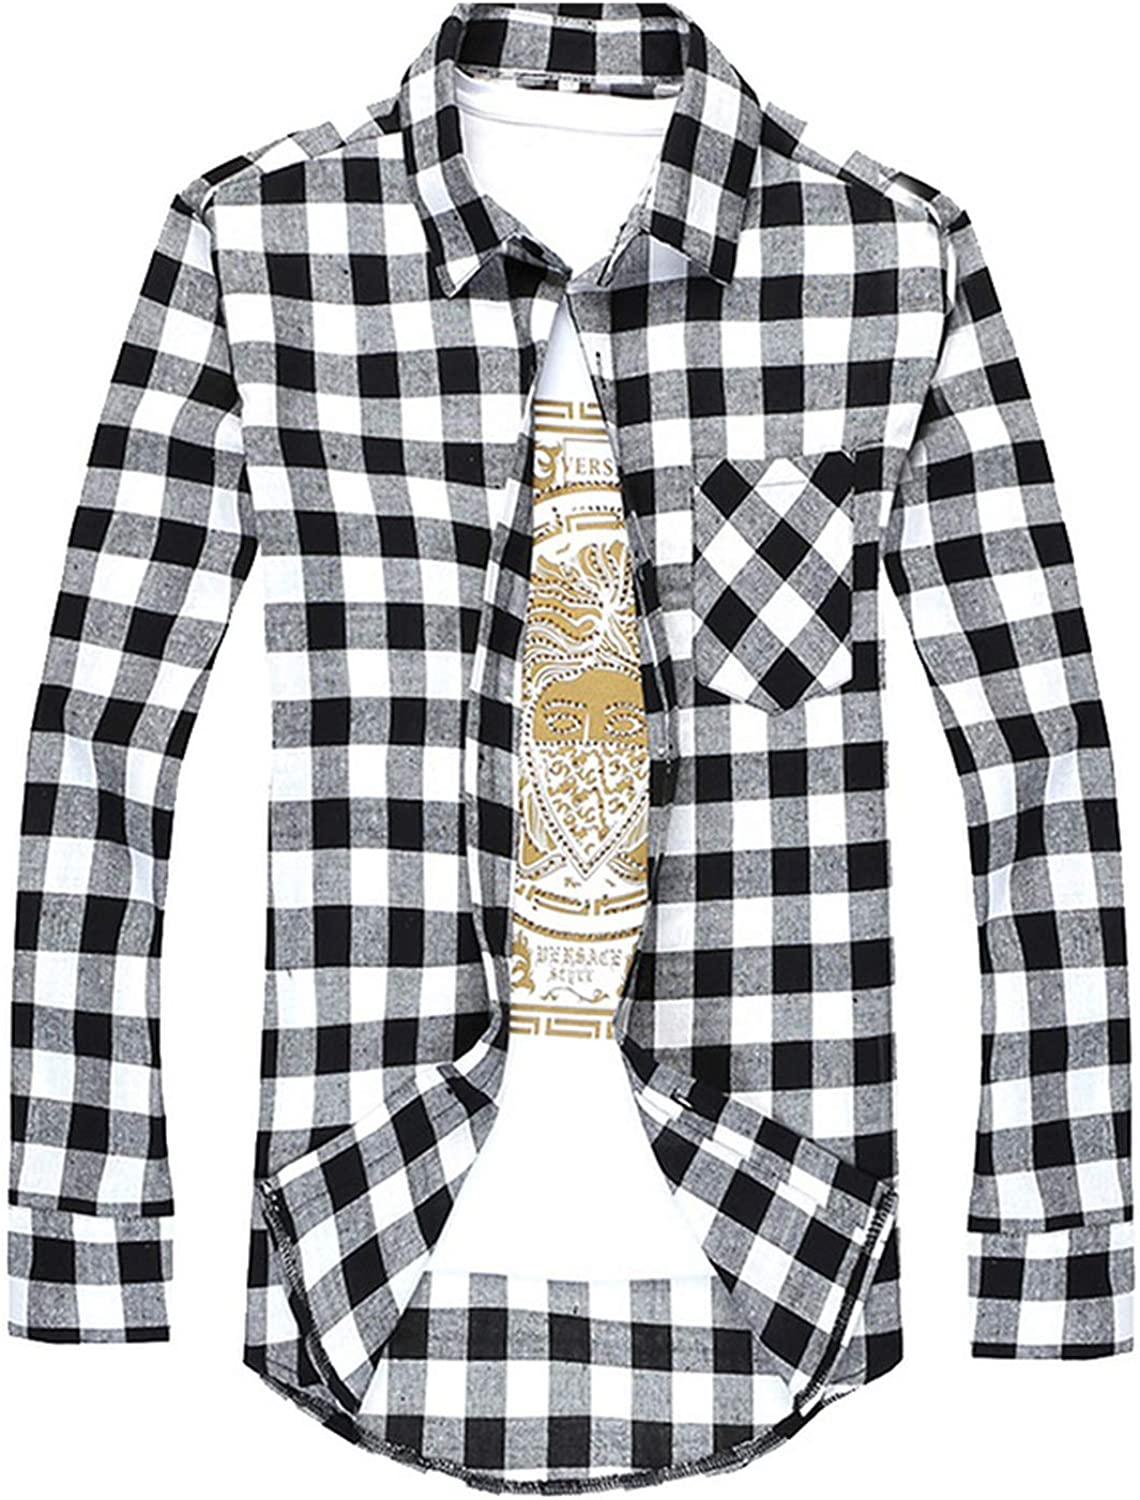 Men Checkered Shirt Button Chemise Long Sleeve Casual Shirts,Black and White,XXL,United States